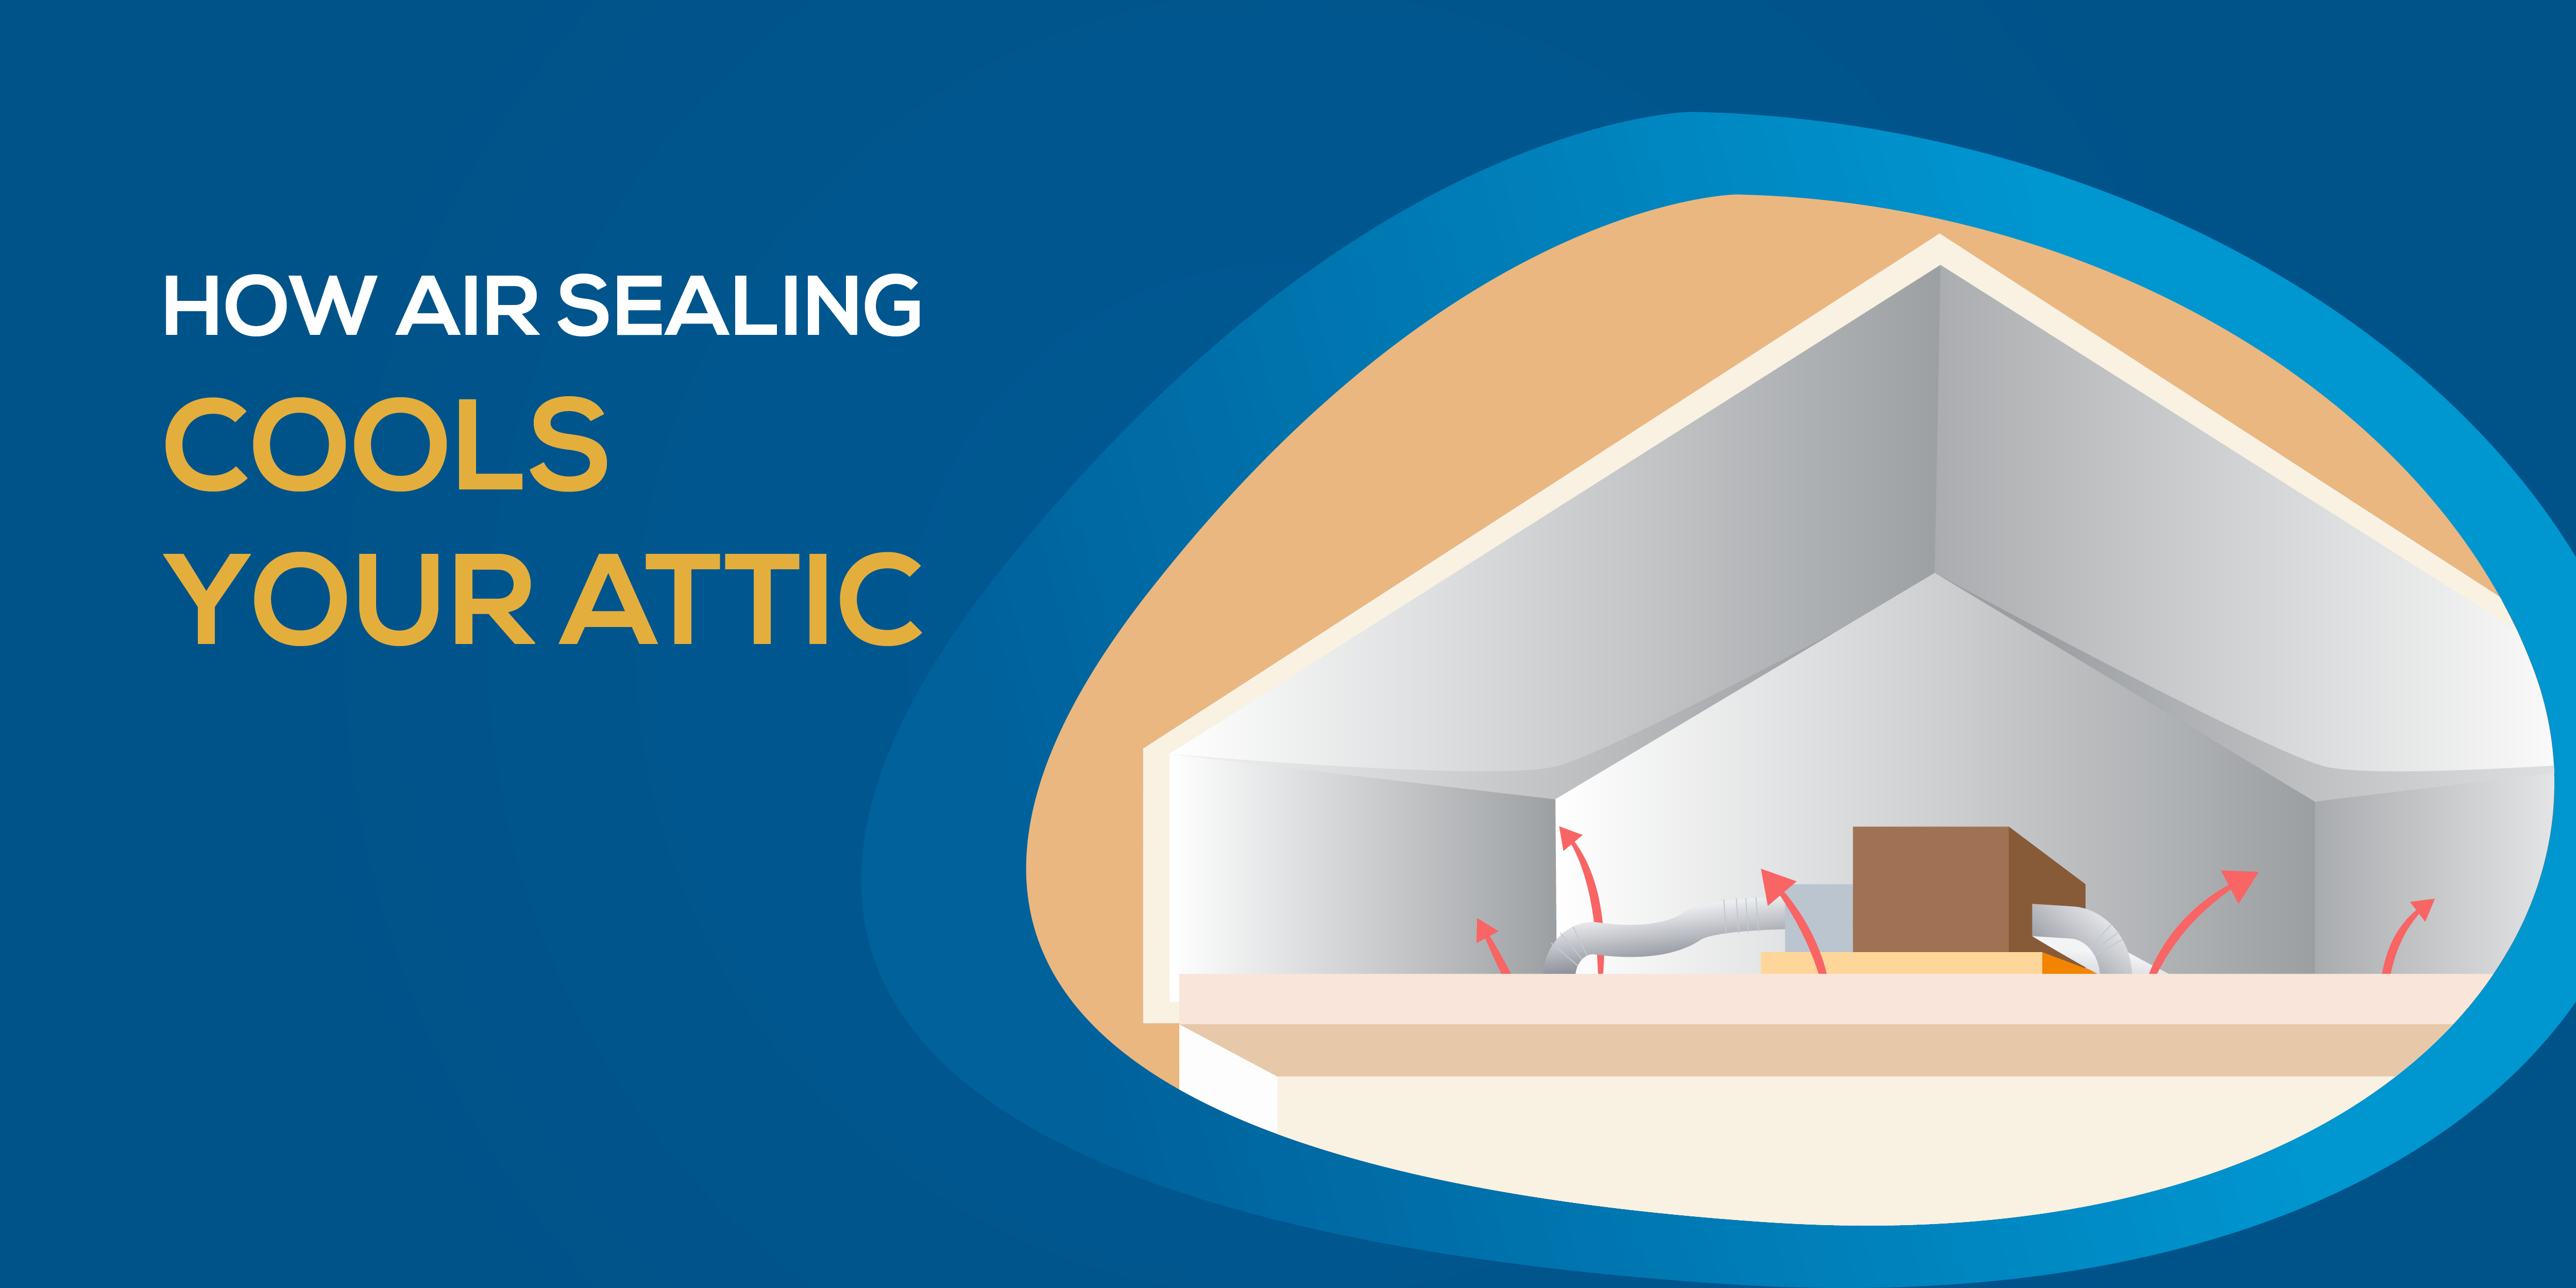 How Air Sealing Cools Your Attic